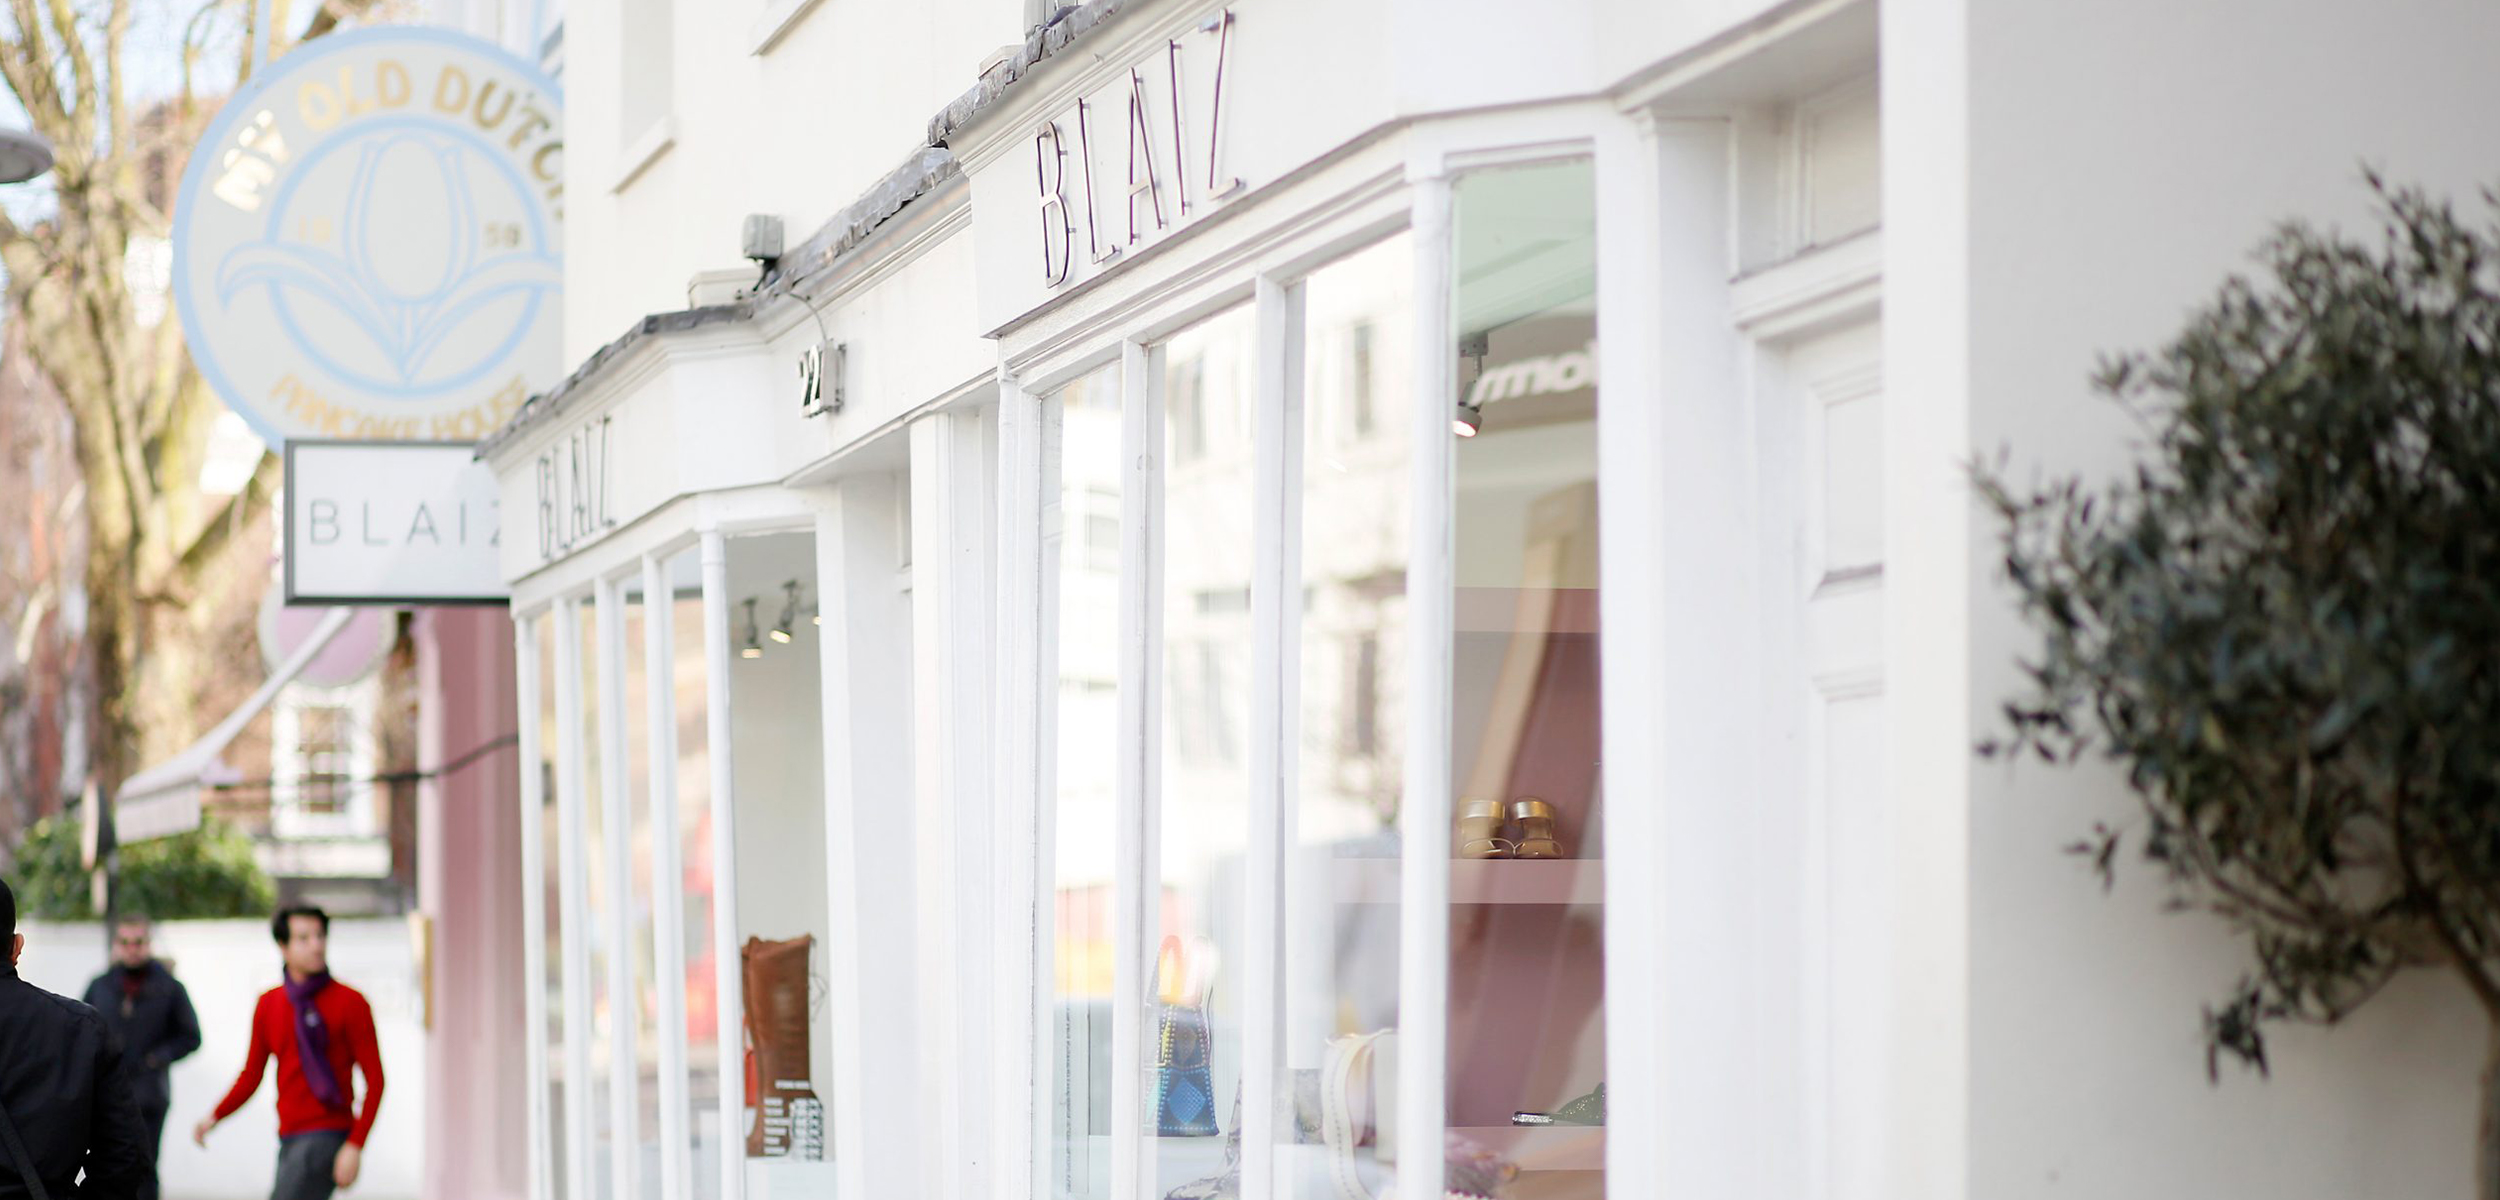 Sloane Stanley know the best locations, hidden treasures and where to get the best coffee after a morning of shopping along with the estate.